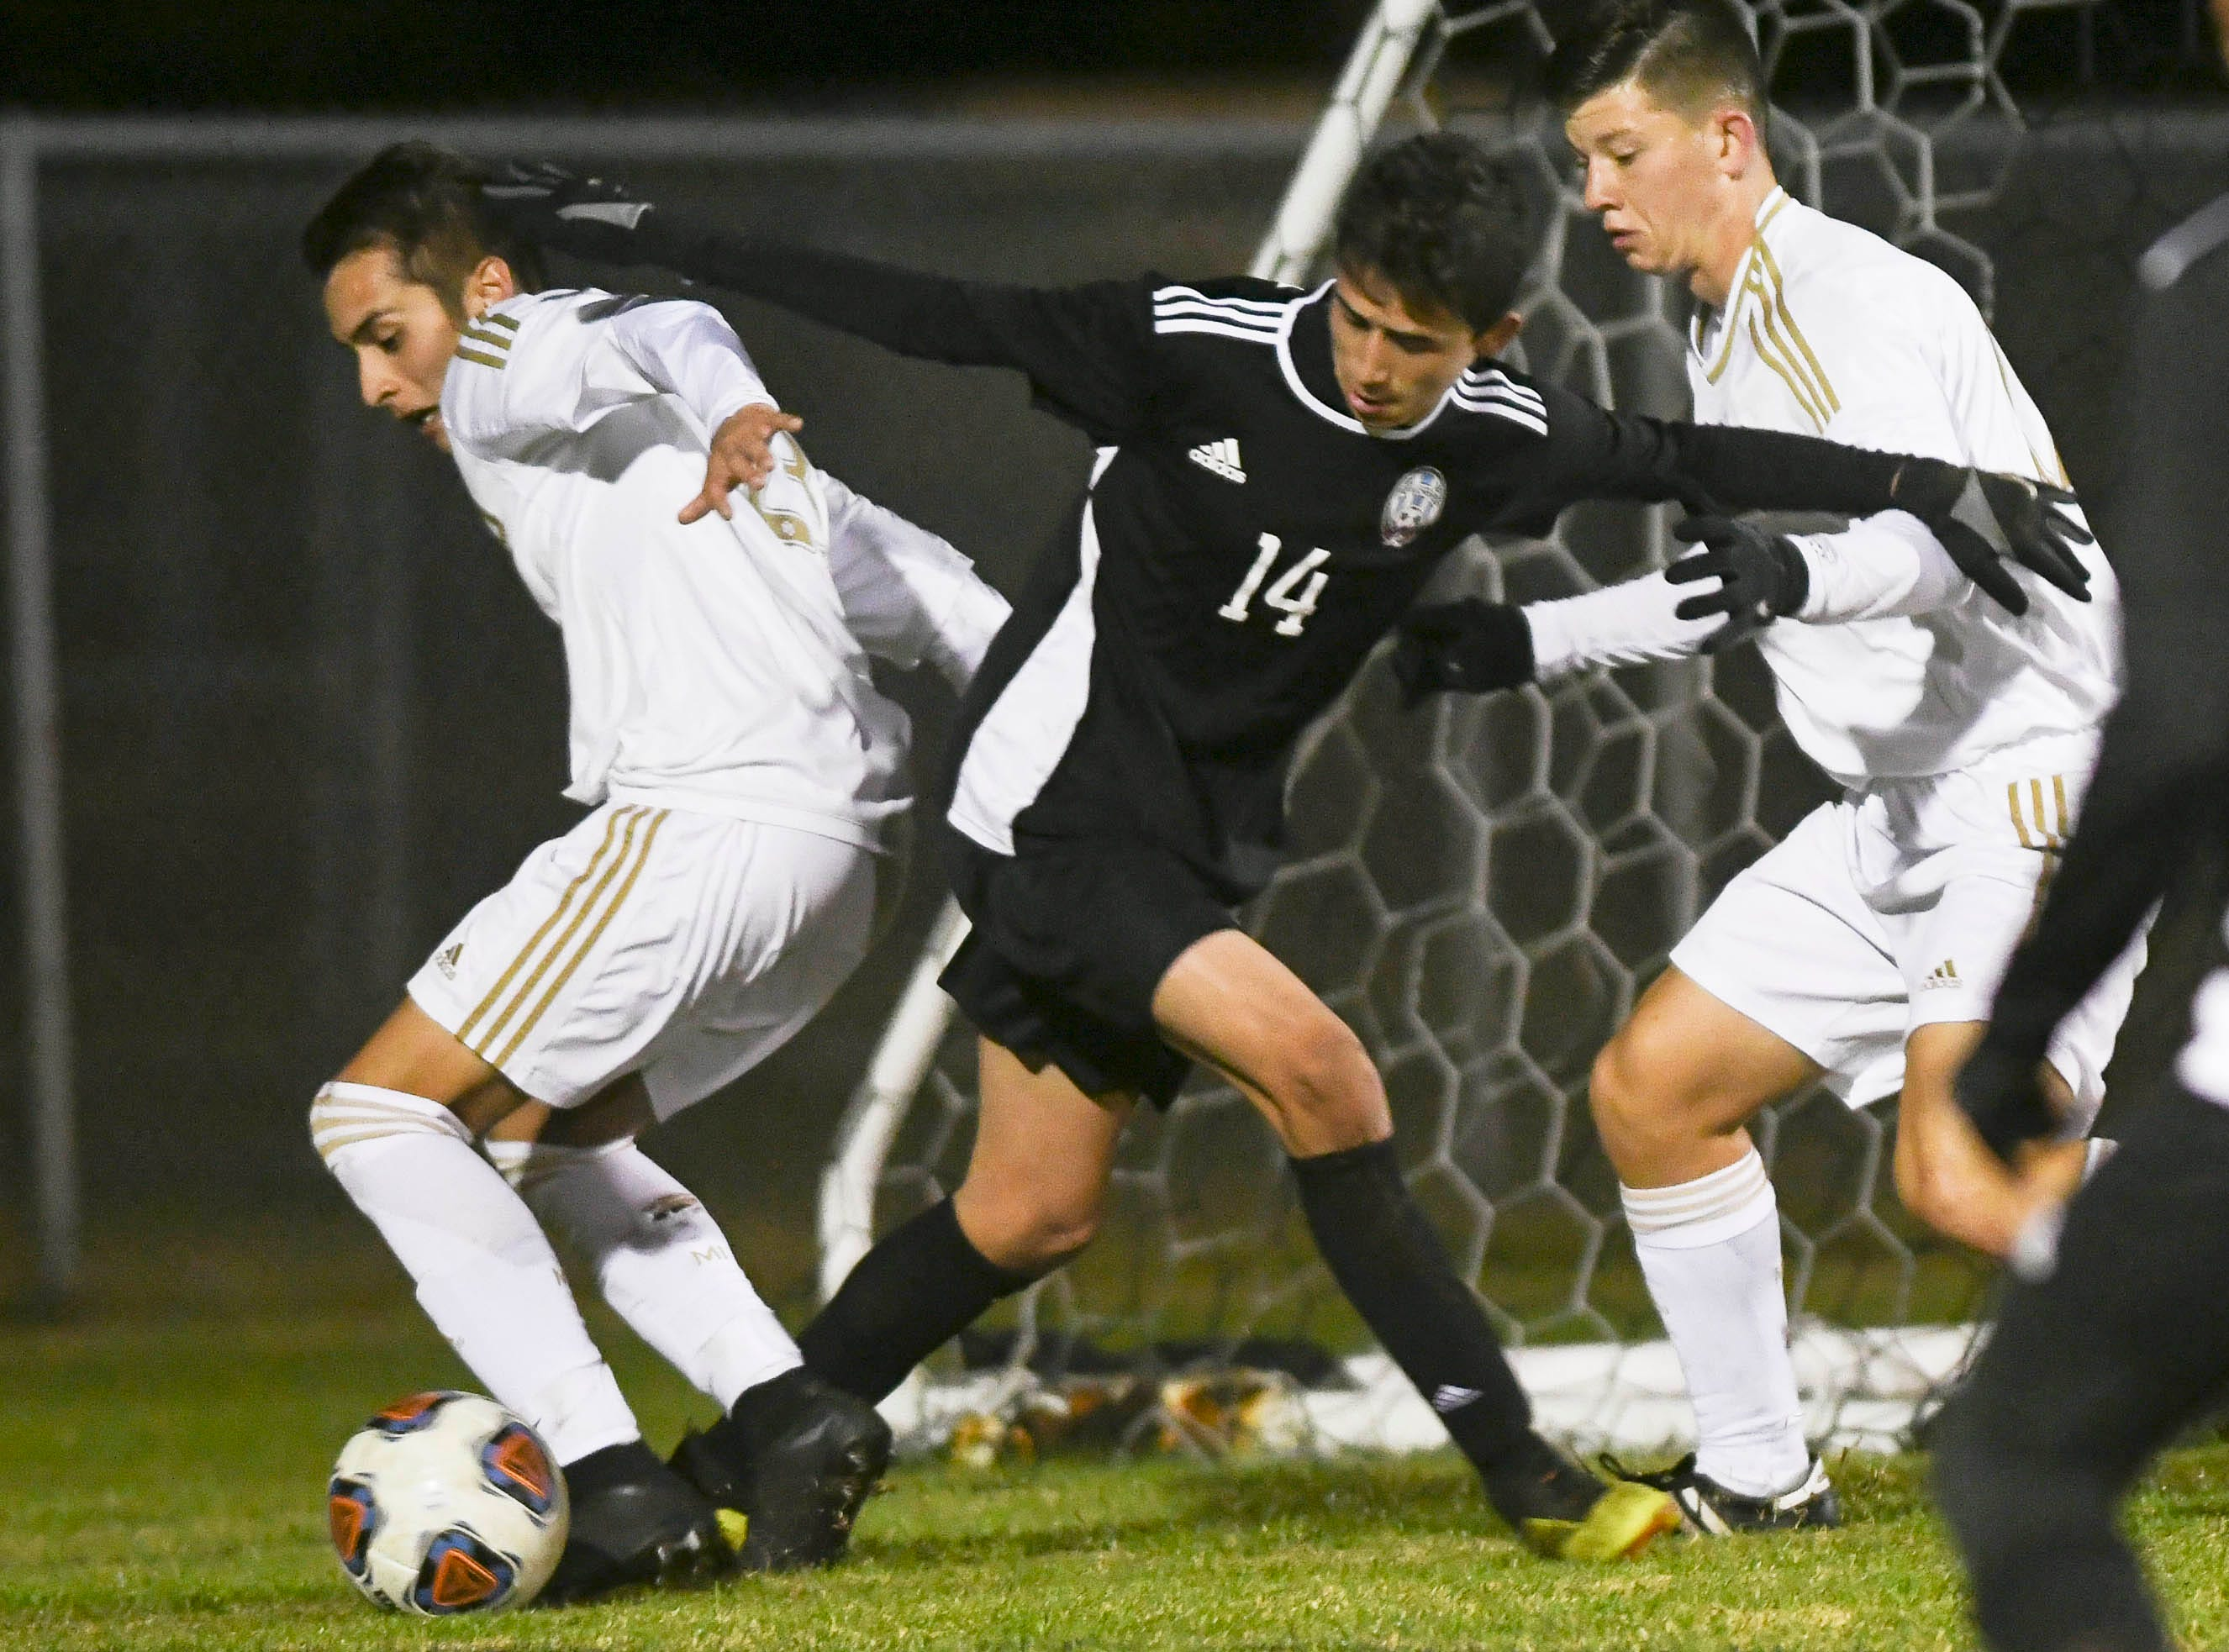 Luis Esteban Son of Rockledge is harassed by Ethan Mills (left) and Jake Sorensen of Merritt Island during Wednesday's District 12, Class 3A semifinal at McLarty Stadium